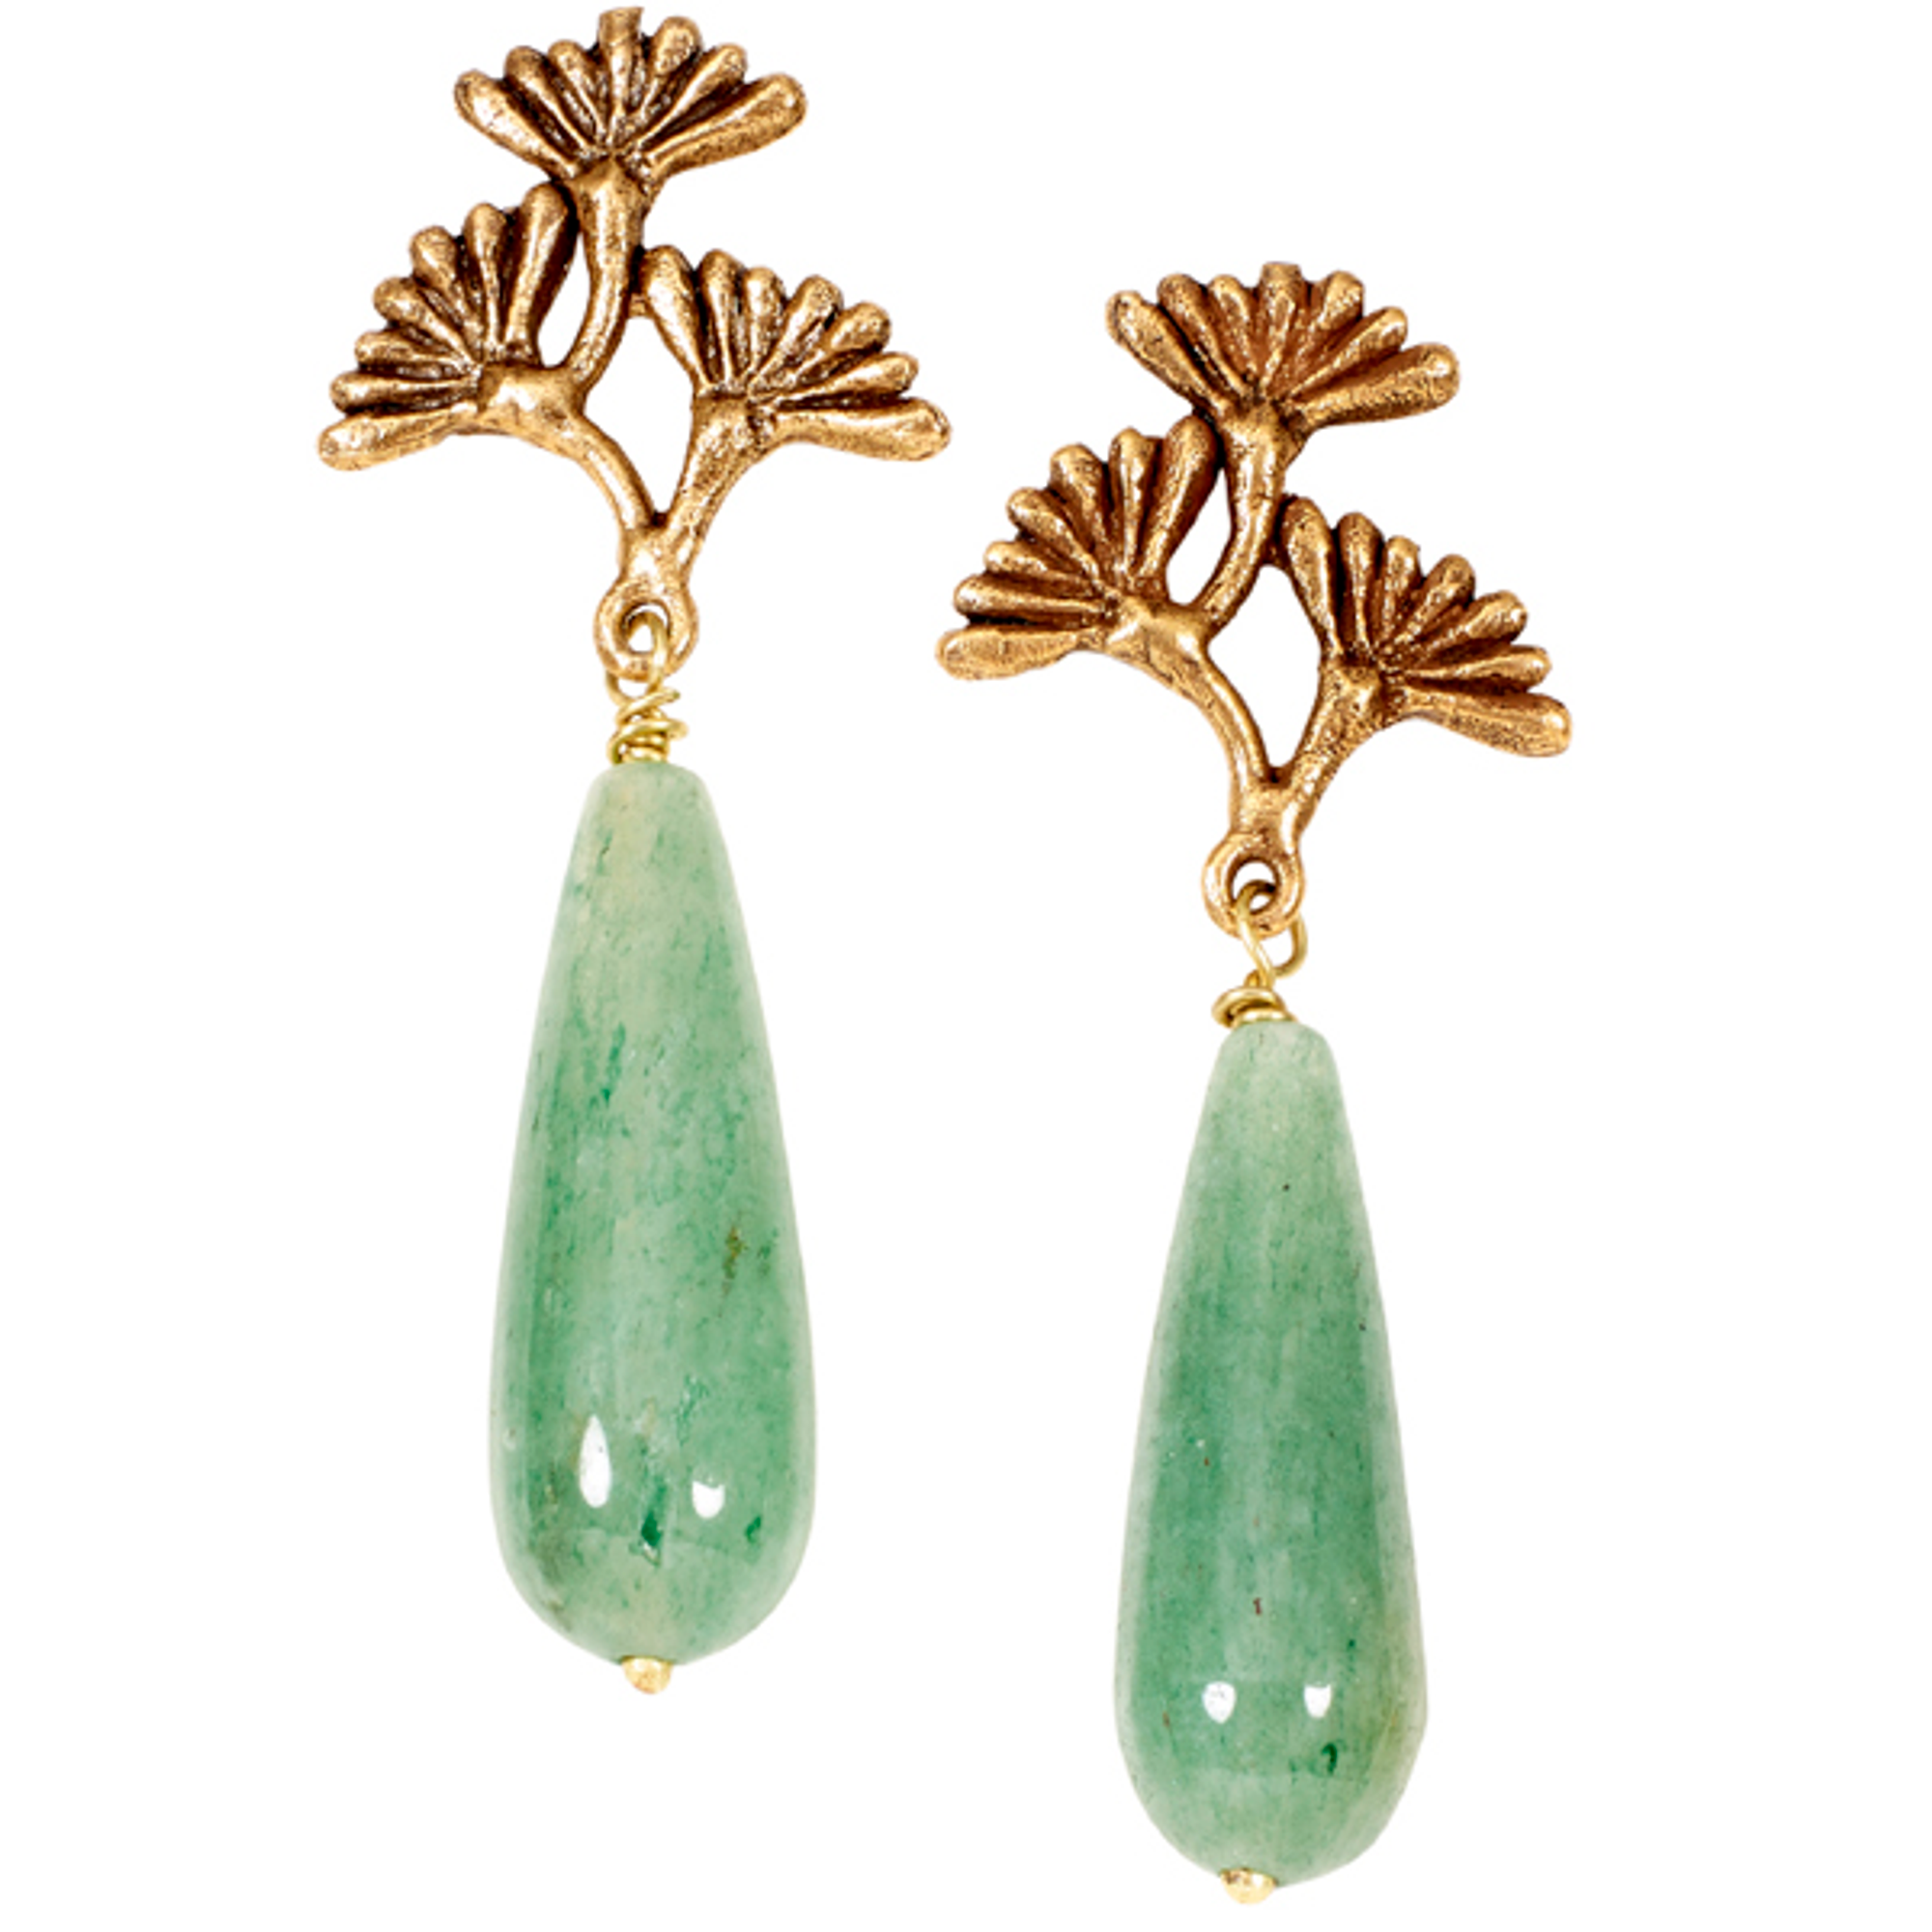 29a8349d6913a Vintage Dandelion Jade Post Earrings | Nature Jewelry